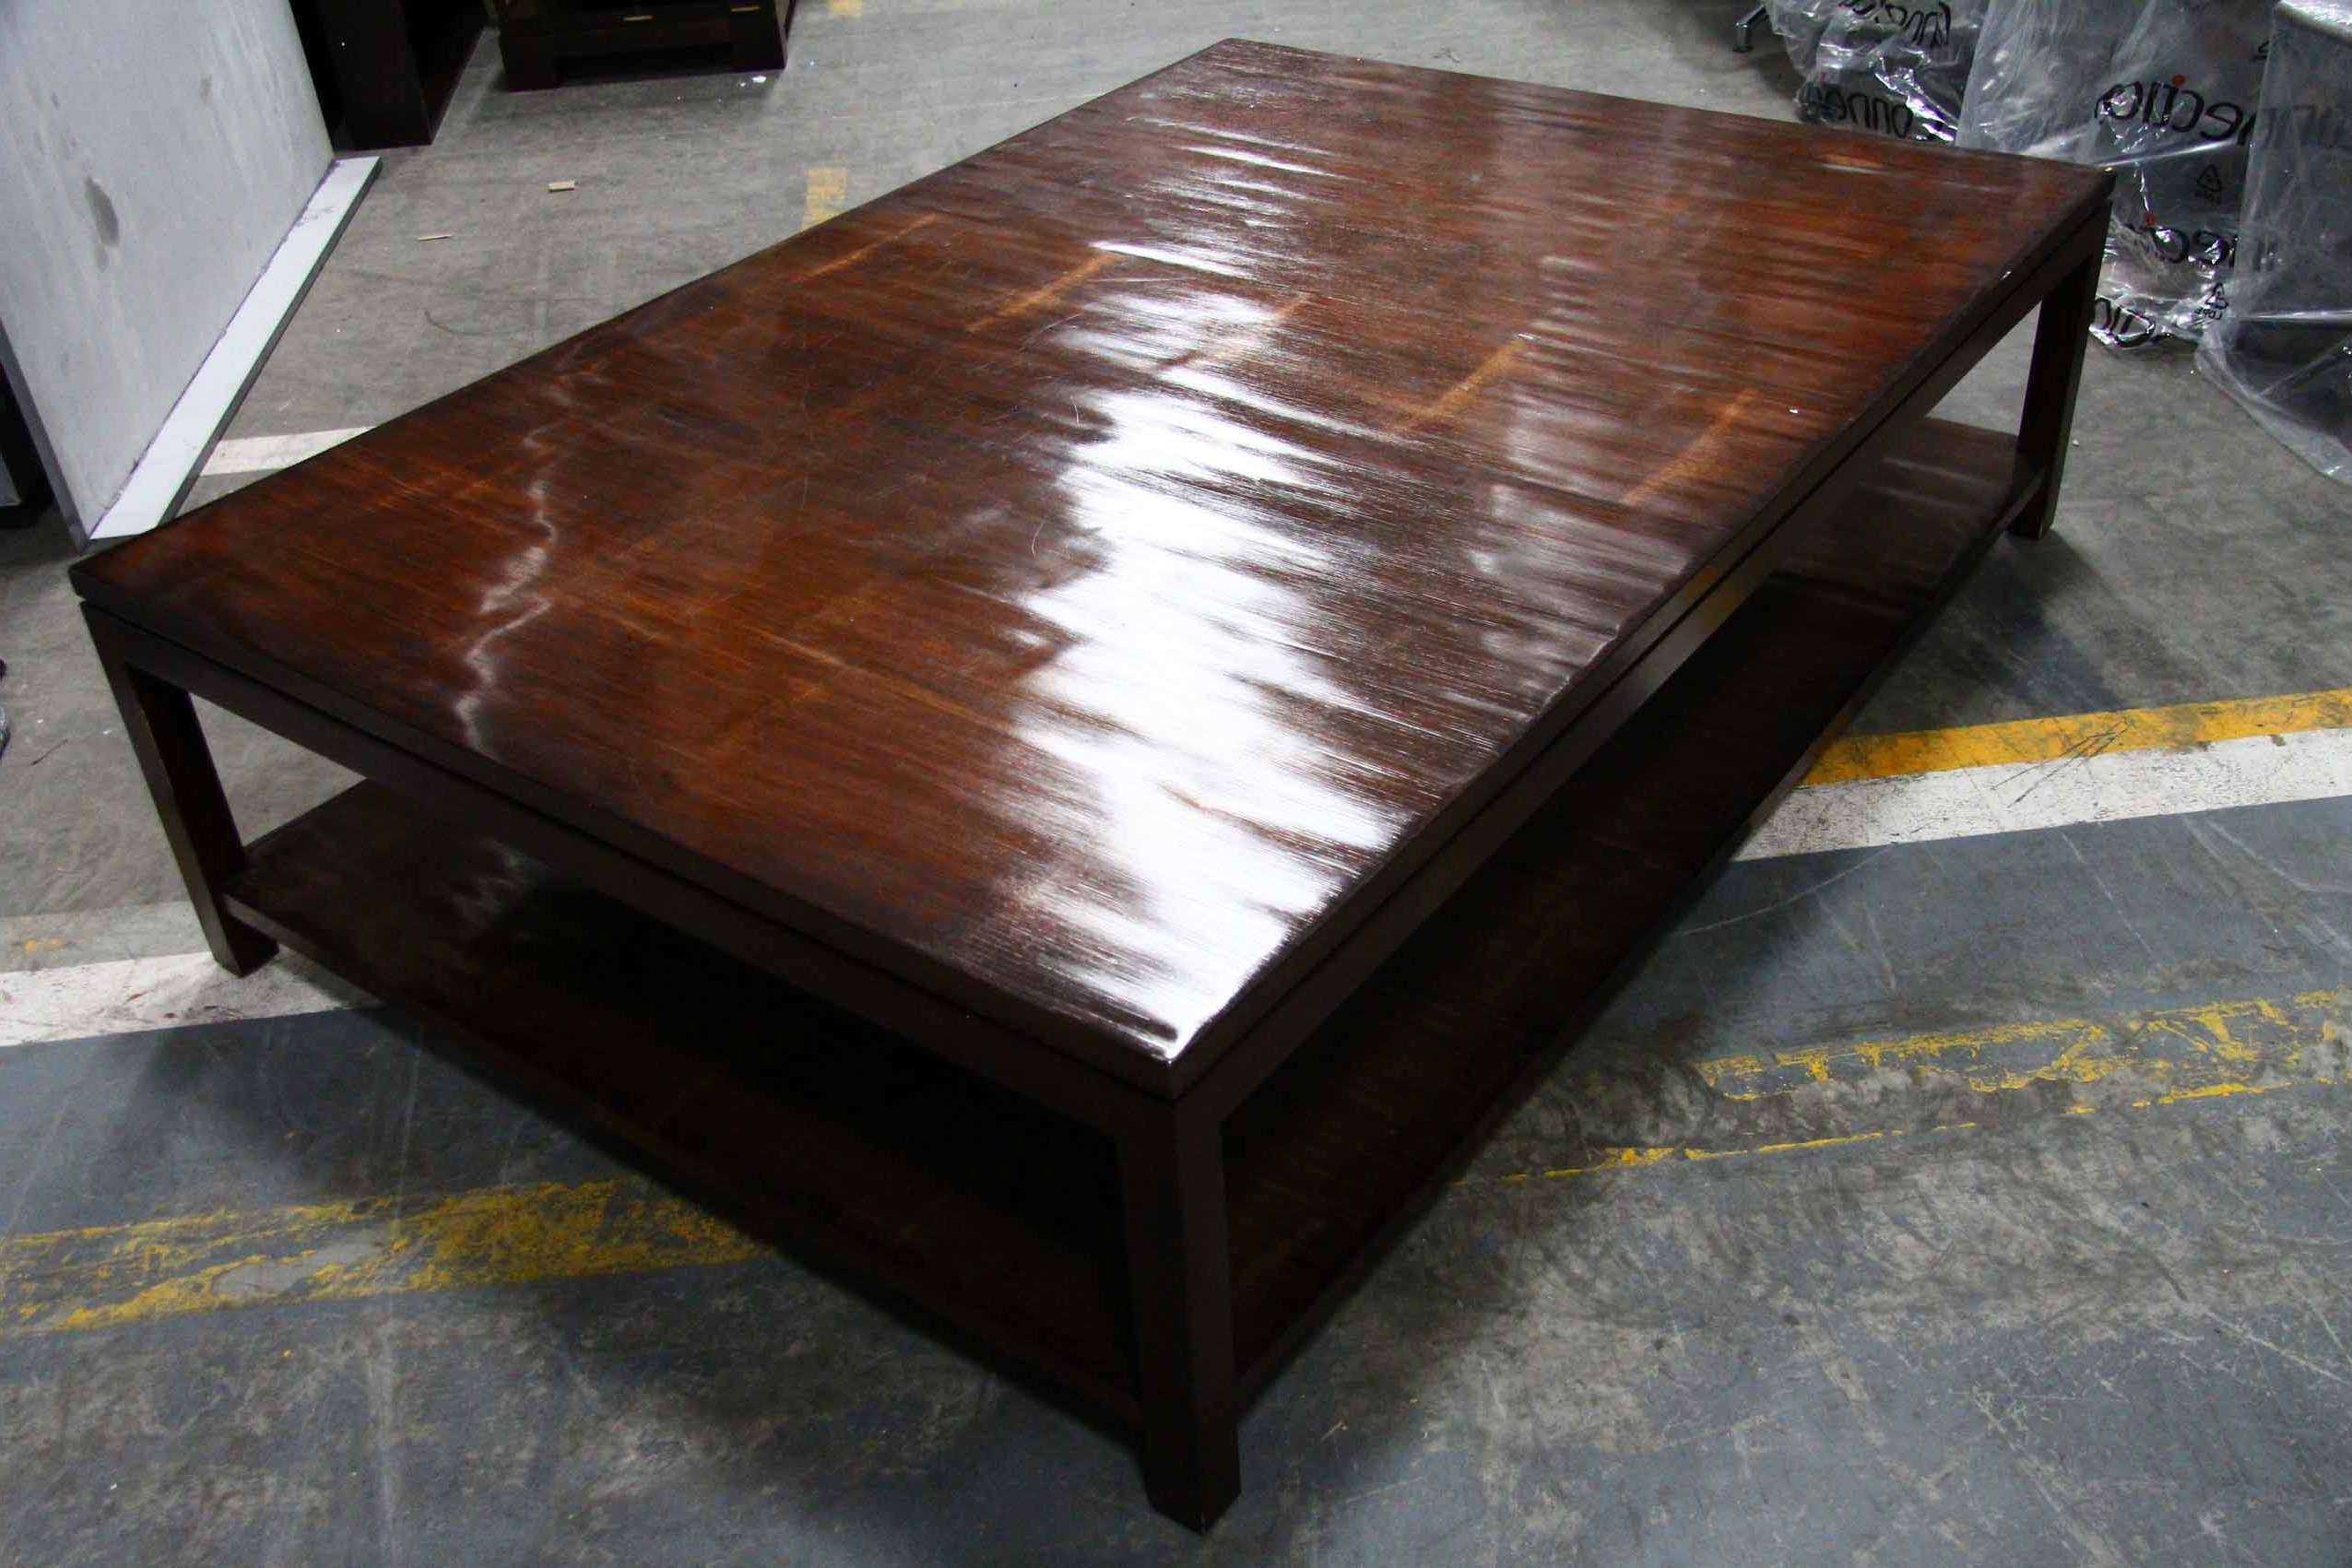 Large Coffee Tables With Storage Large Coffee Table With Storage Within 2018 Large Coffee Table With Storage (View 9 of 20)